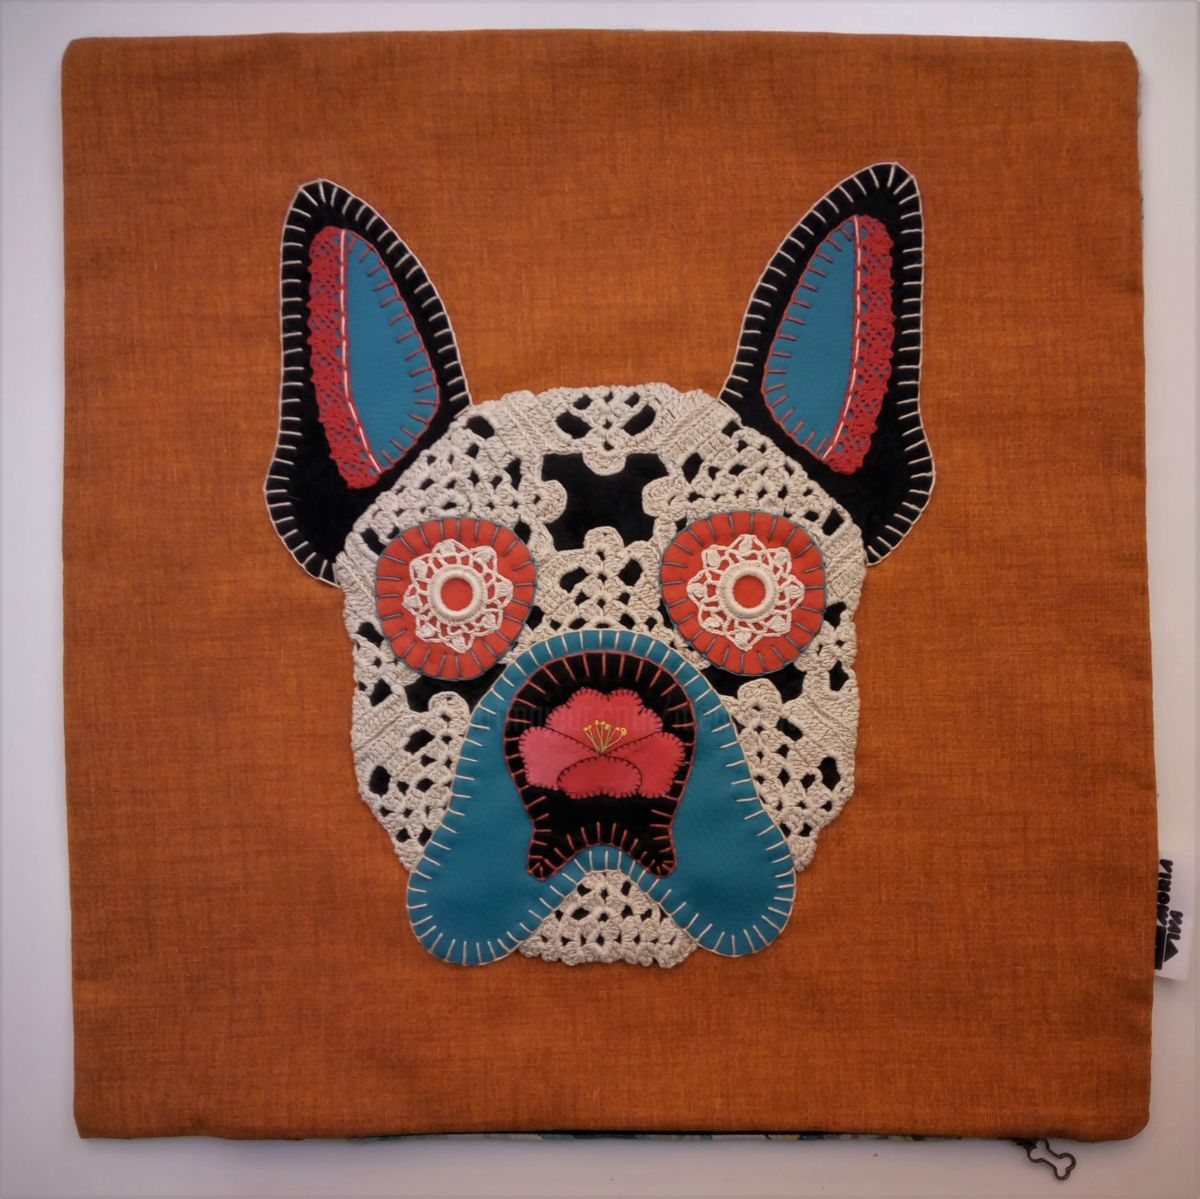 Unique Handstiched Bulldog Pillow Case - Textile Art ©2018 by Memória Viva -